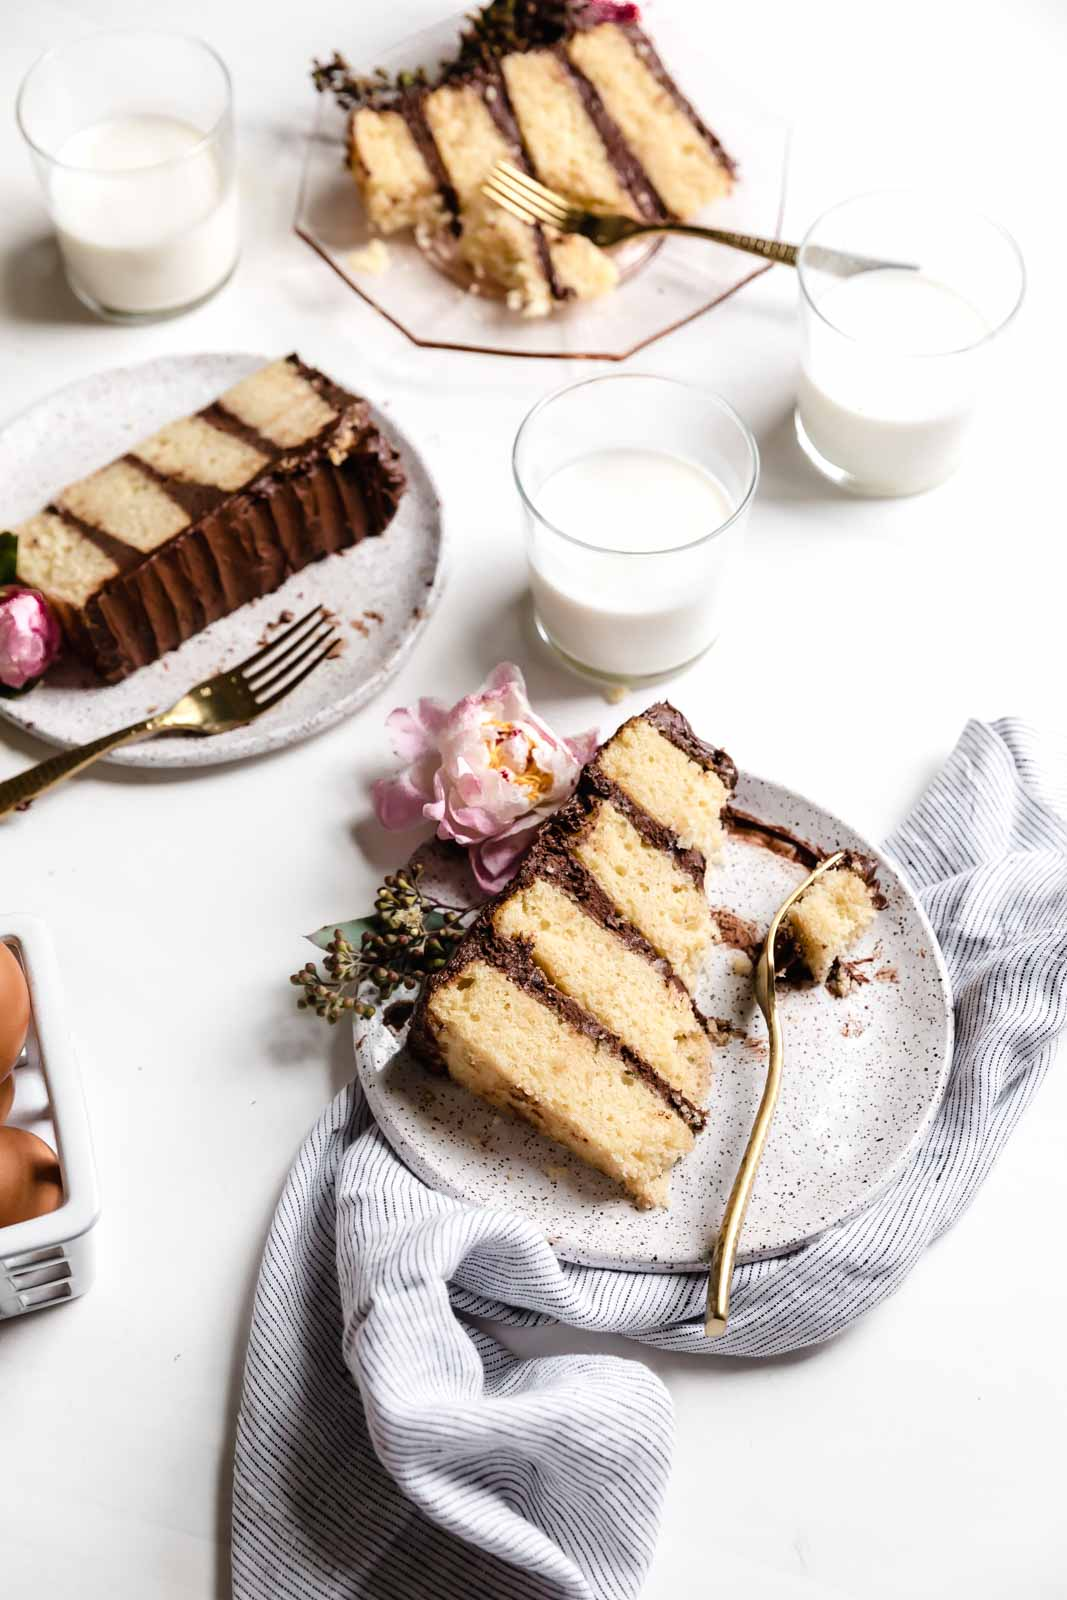 Make any day feel like a birthday with the best ever vanilla cake with chocolate frosting. This cake IS the celebration!